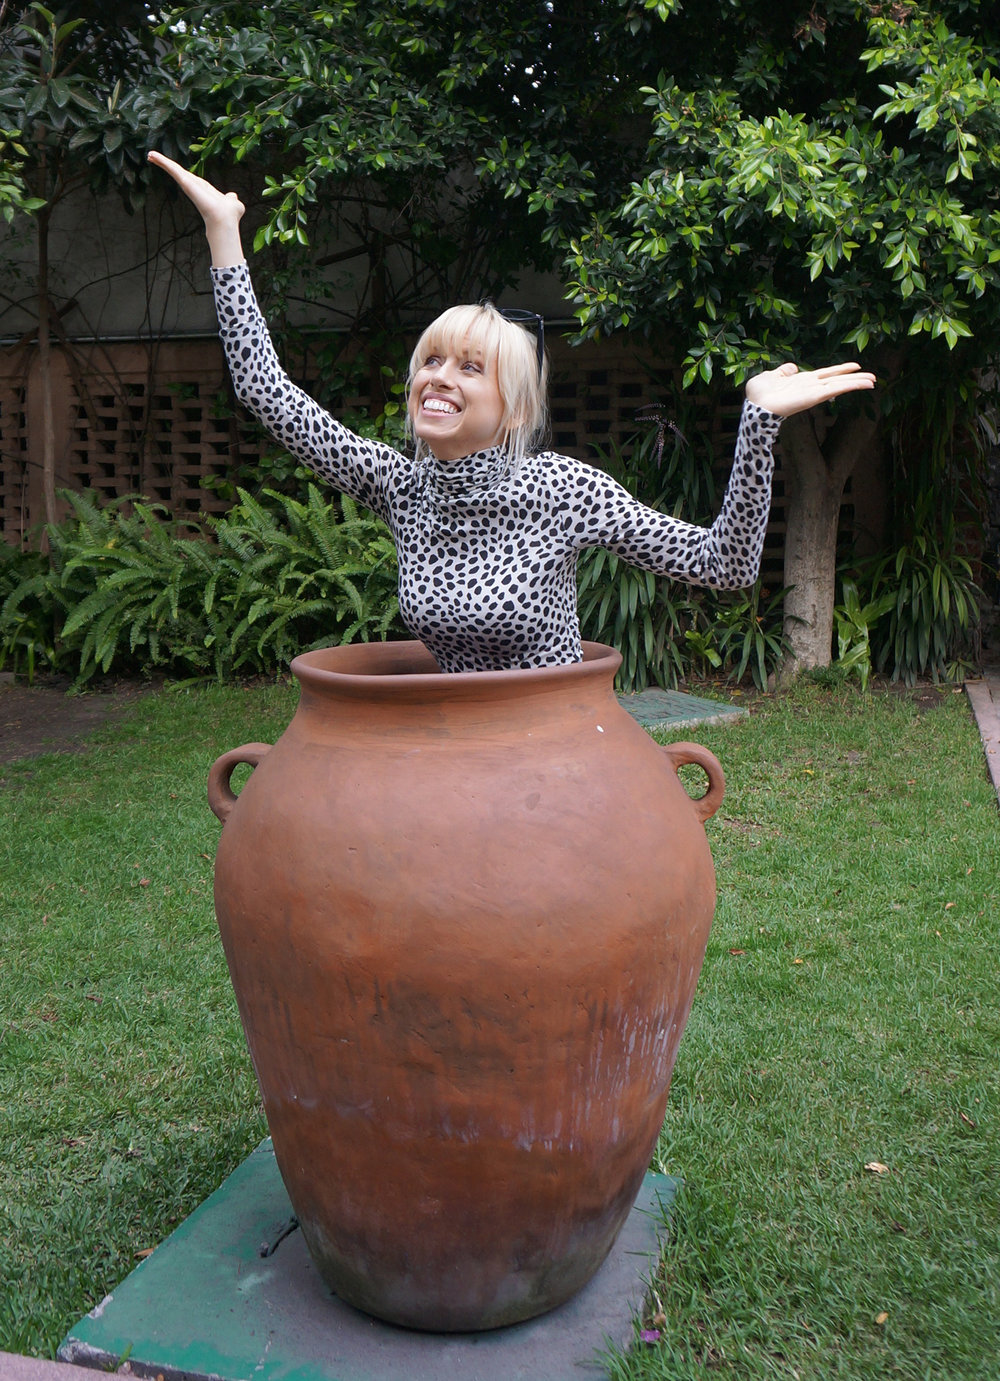 Superholly inside of a clay pot